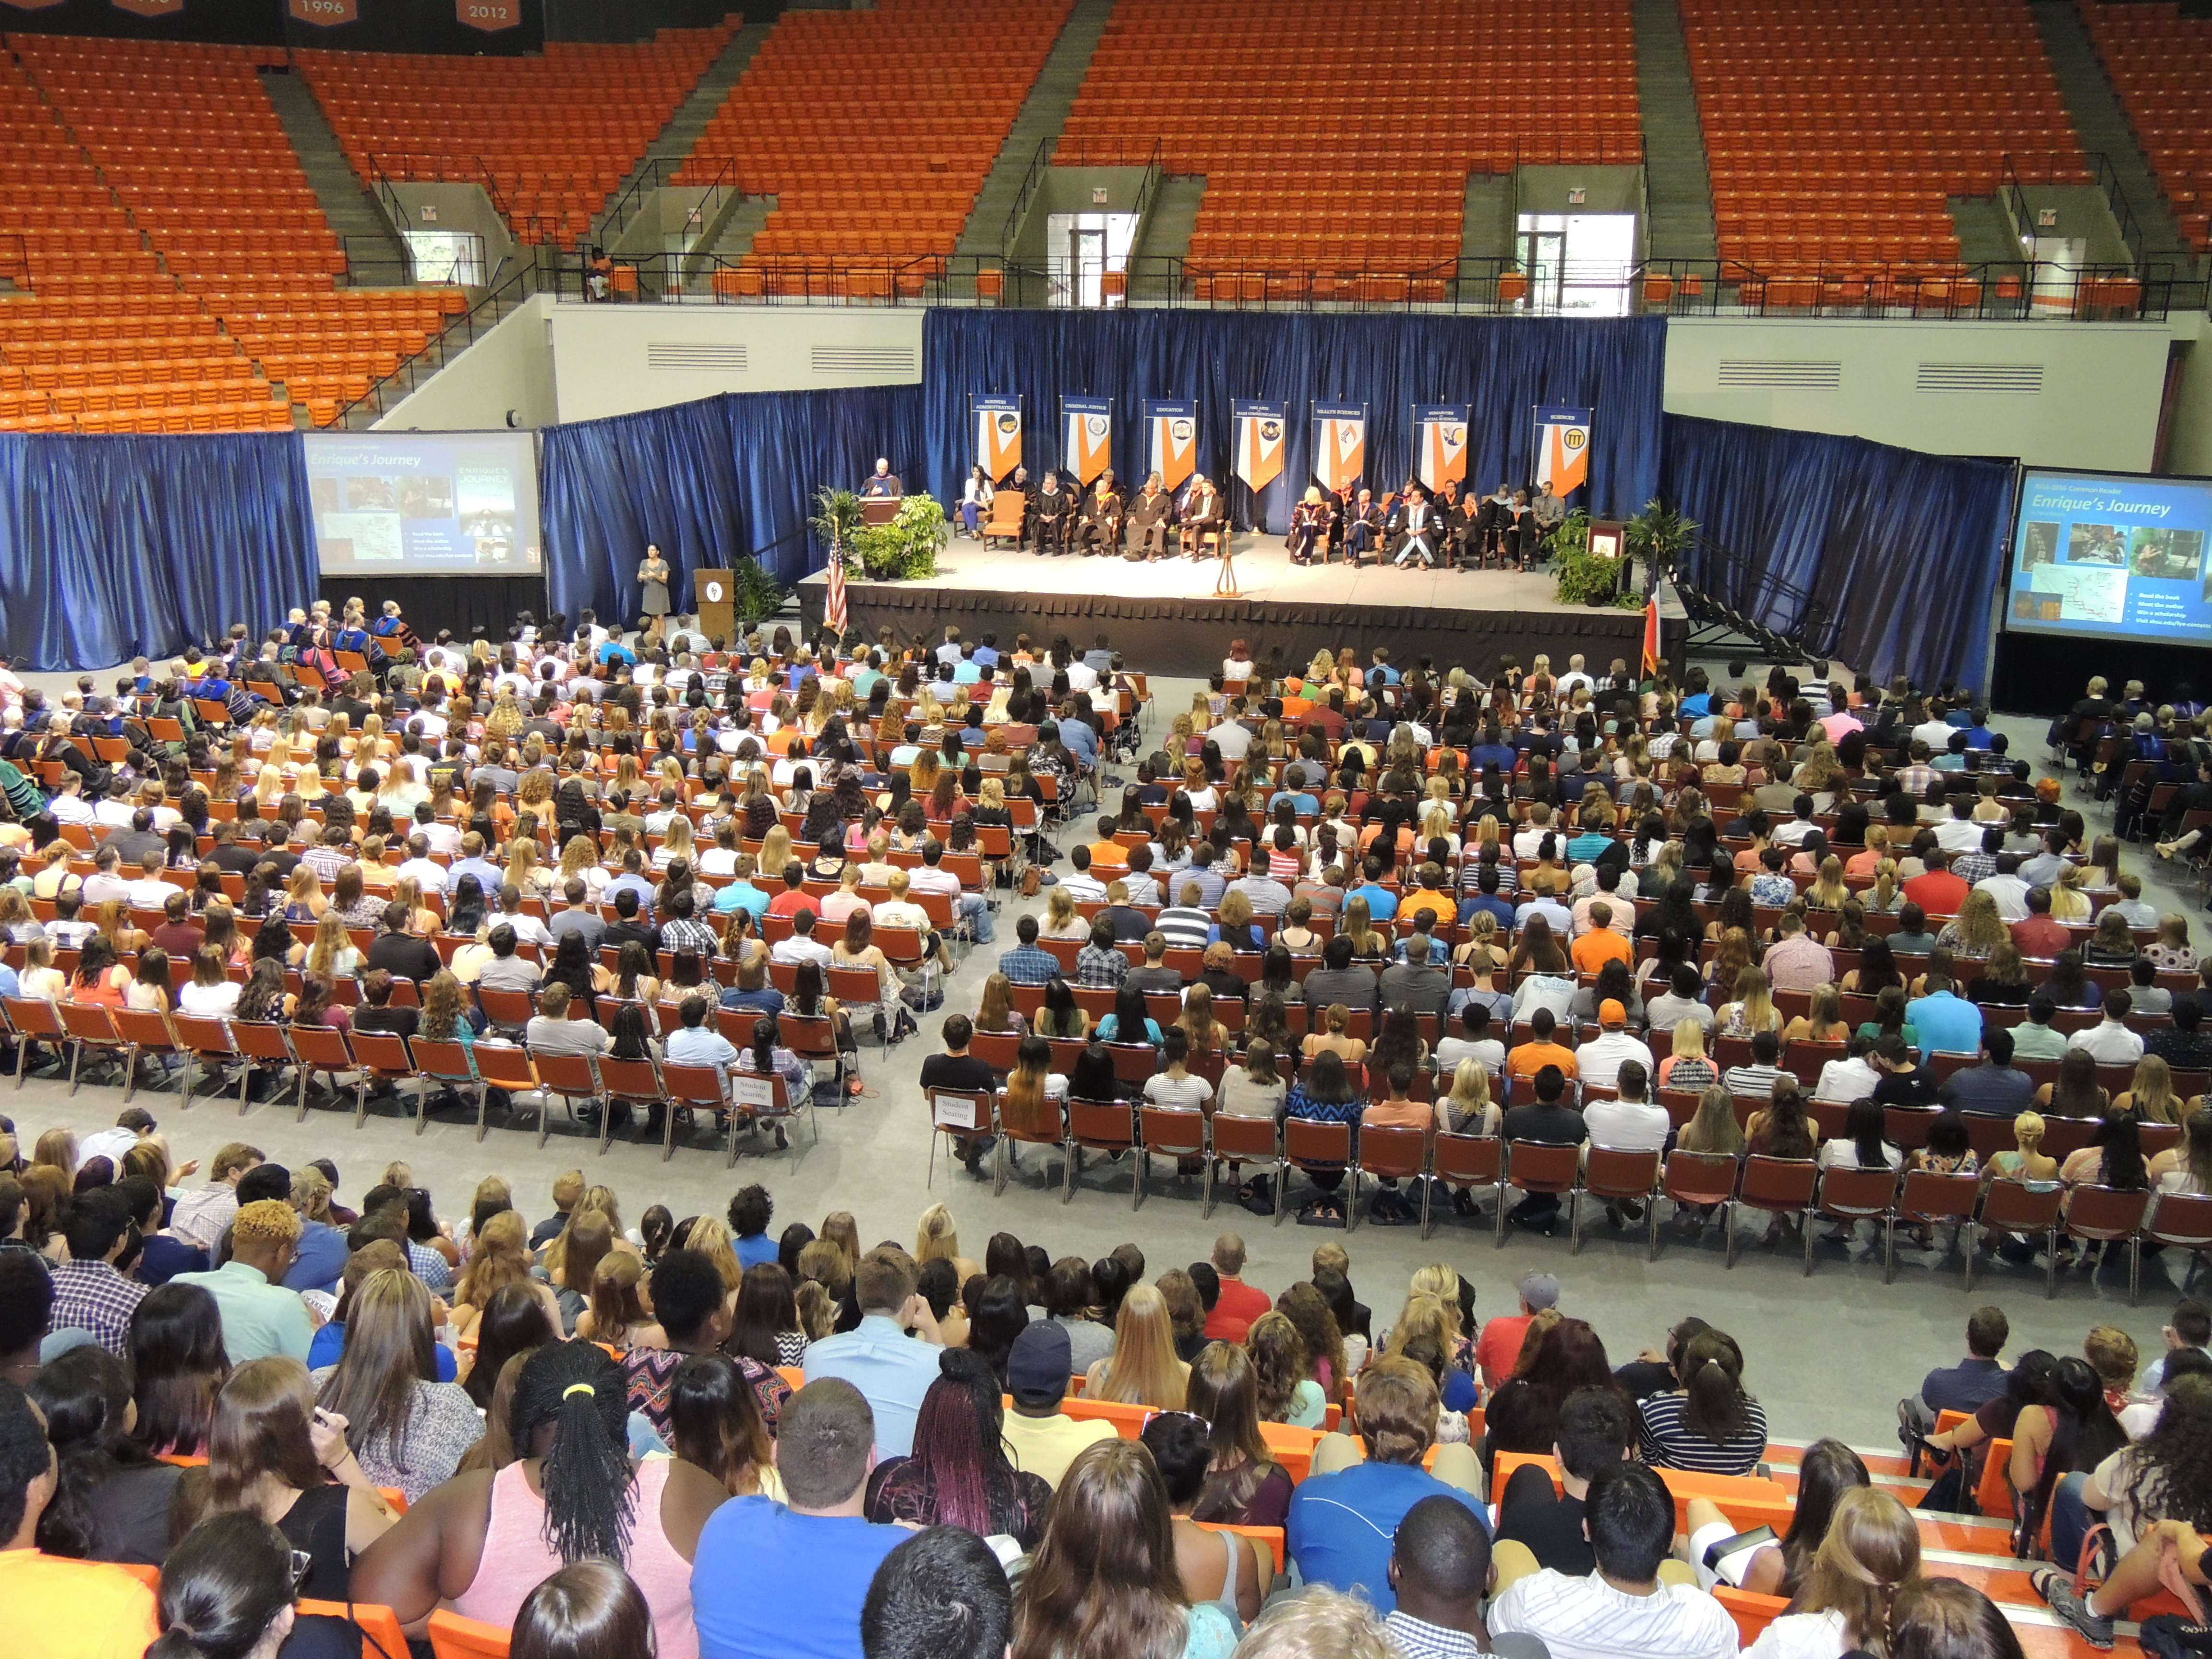 A large number of students gather in the Johnson Coliseum for New Student Convocation.